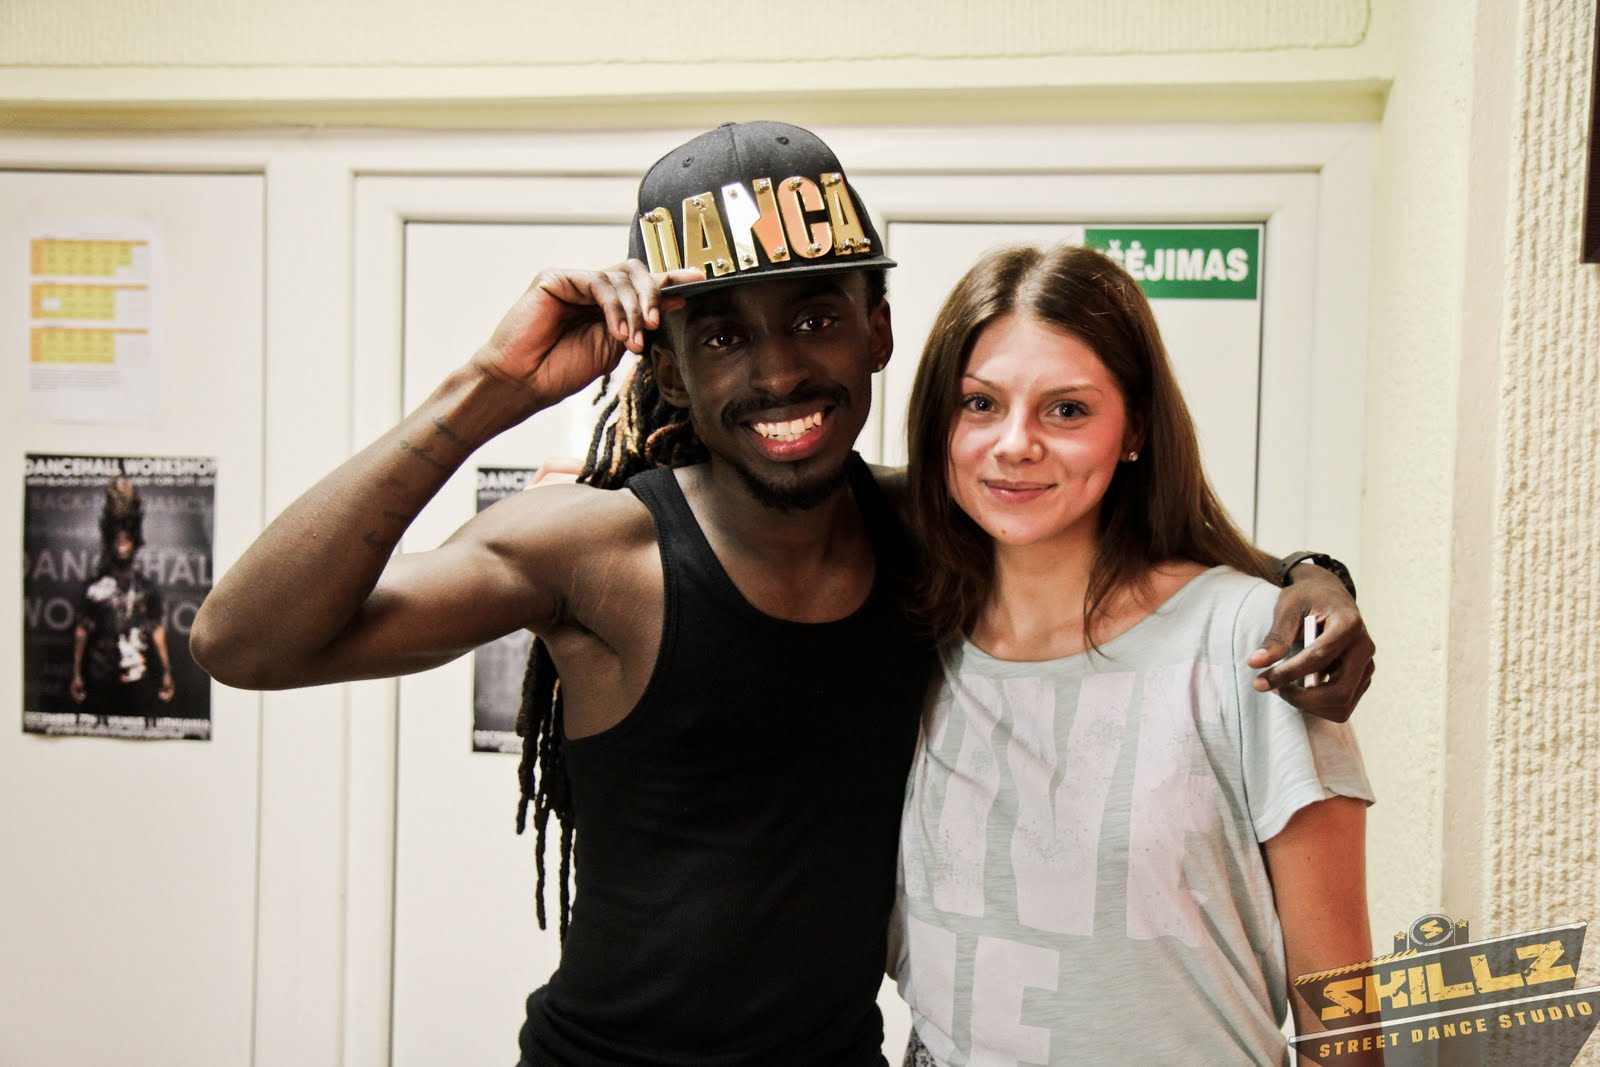 Dancehall workshop with Black Di Danca (USA, New Y - IMG_6766.jpg